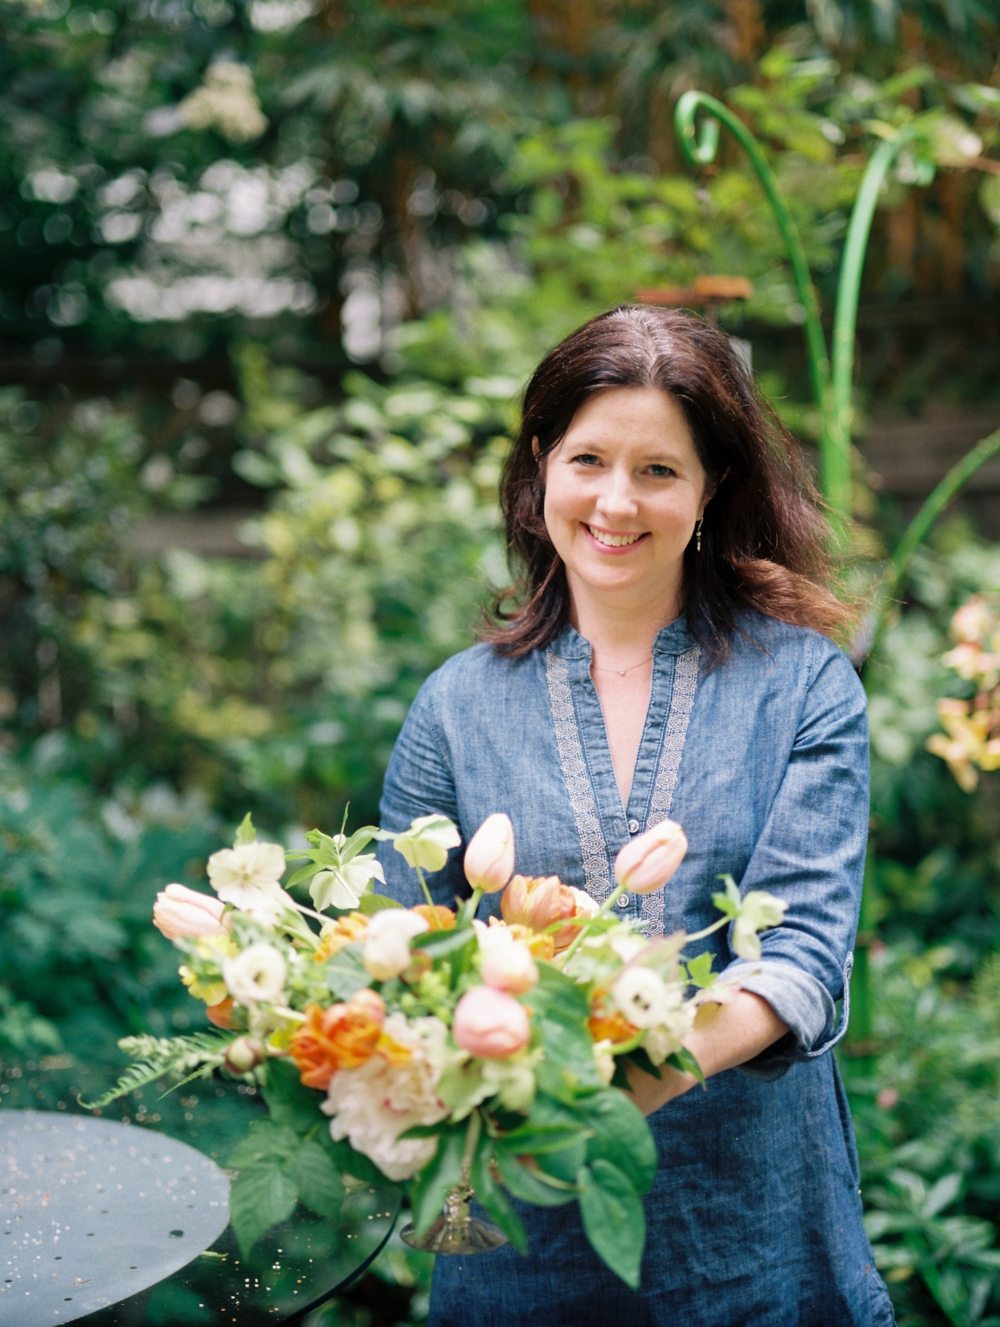 About us - Smashing Petals is a boutique floral design studio in Seattle.  We specialize in garden style arrangements for weddings and parties.  No matter how small your gathering, we would love to be part of it.Keita Horn, our founder pictured here, is a Pacific Northwest Native. She, her son and husband live in Ballard. They enjoy kayaking in stormy weather, reading books, traveling and cooking for friends.